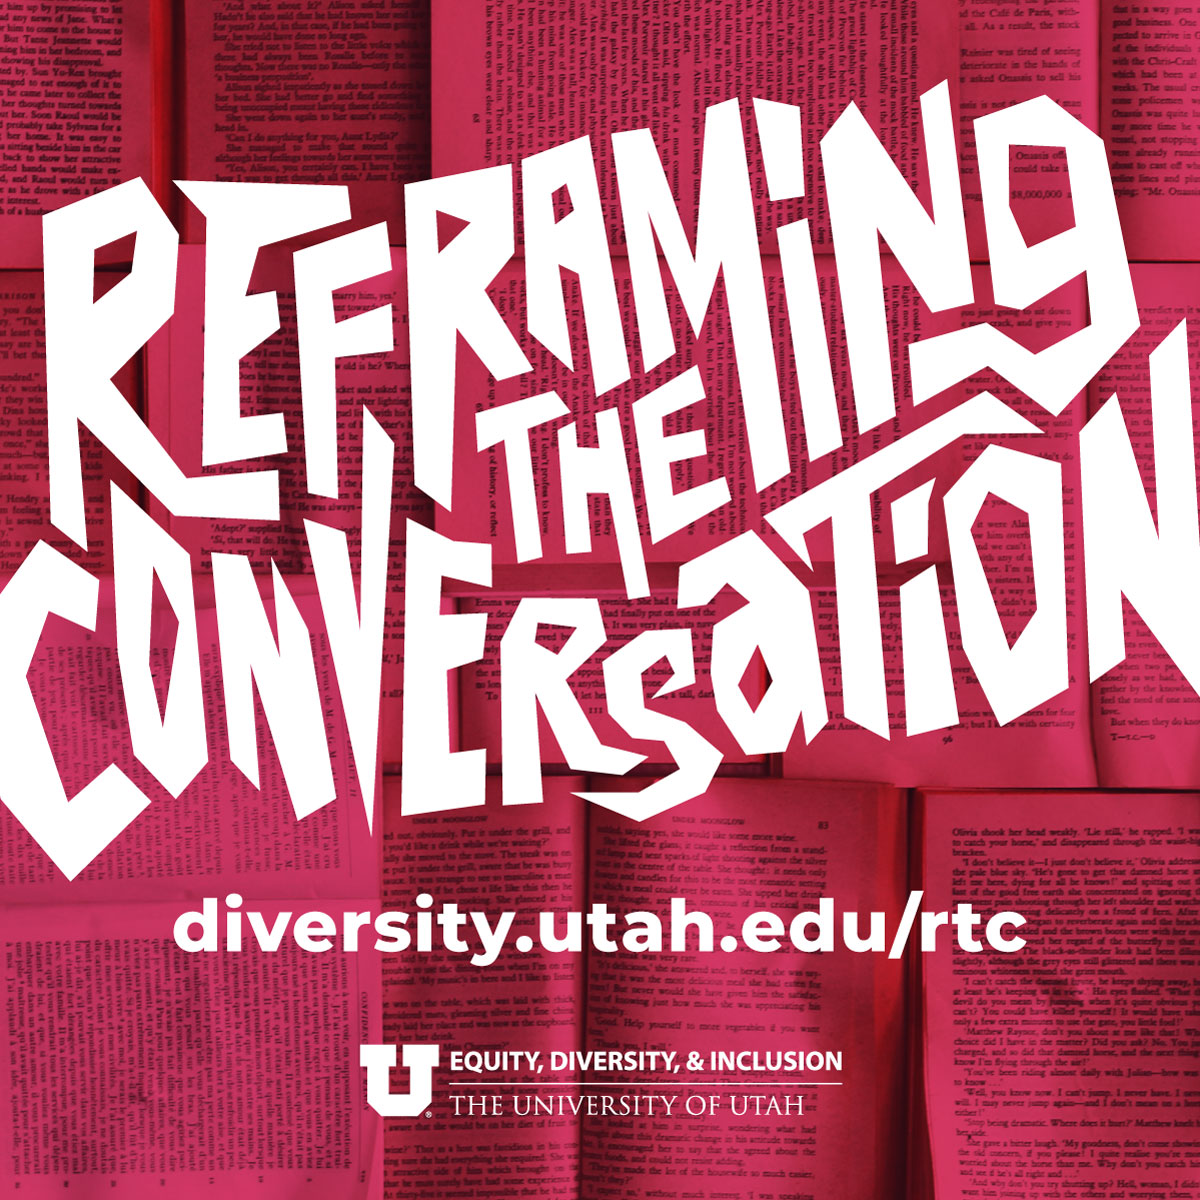 """graphic with a red background and large centered white text reads, """"Reframing the Conversation"""" with the url beneath: diversity.utah.edu/rtc"""